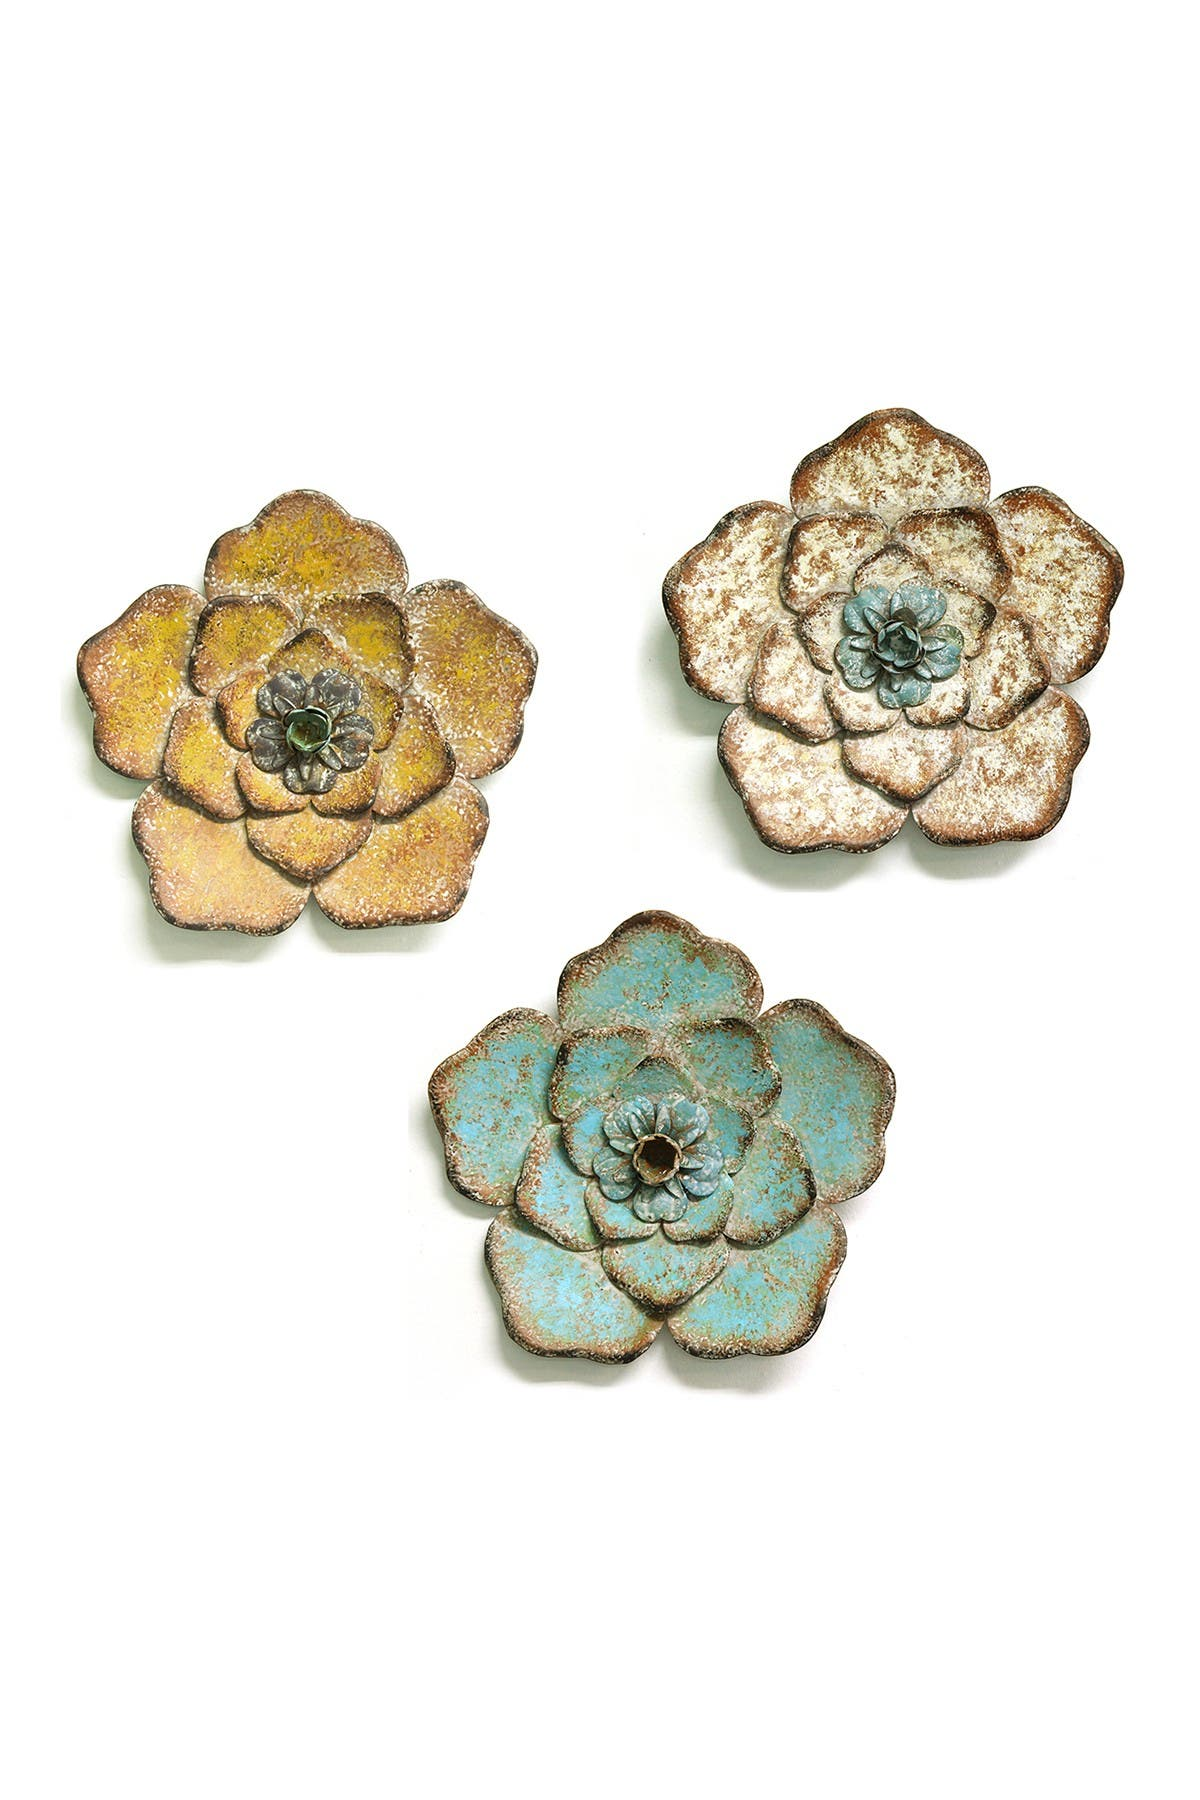 Image of Stratton Home Multi Rustic Flower Wall Decor - Set of 3